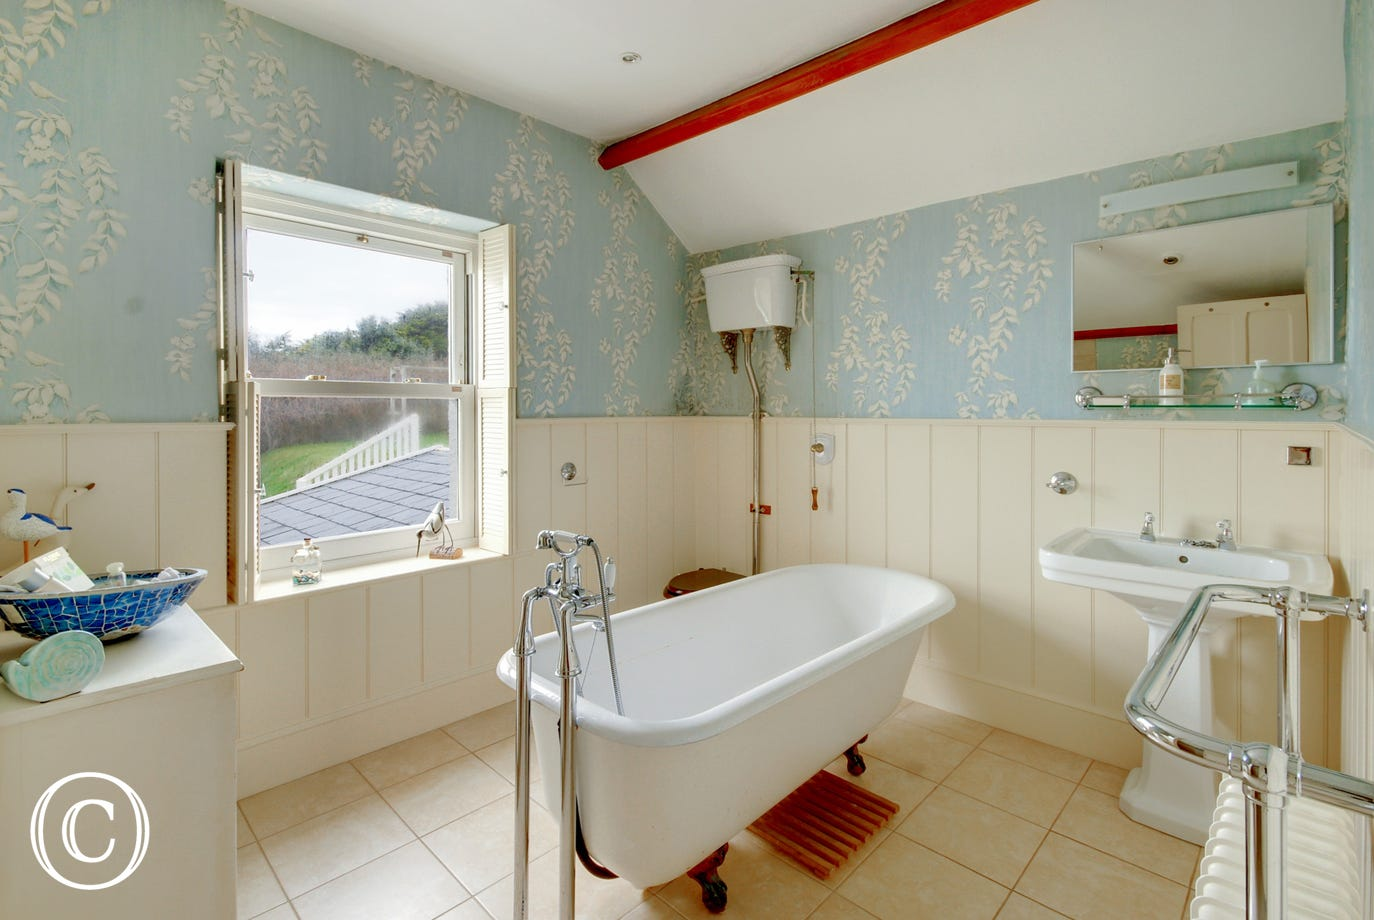 Stylish separate family bathroom with large walk in shower area and freestanding roll top bath